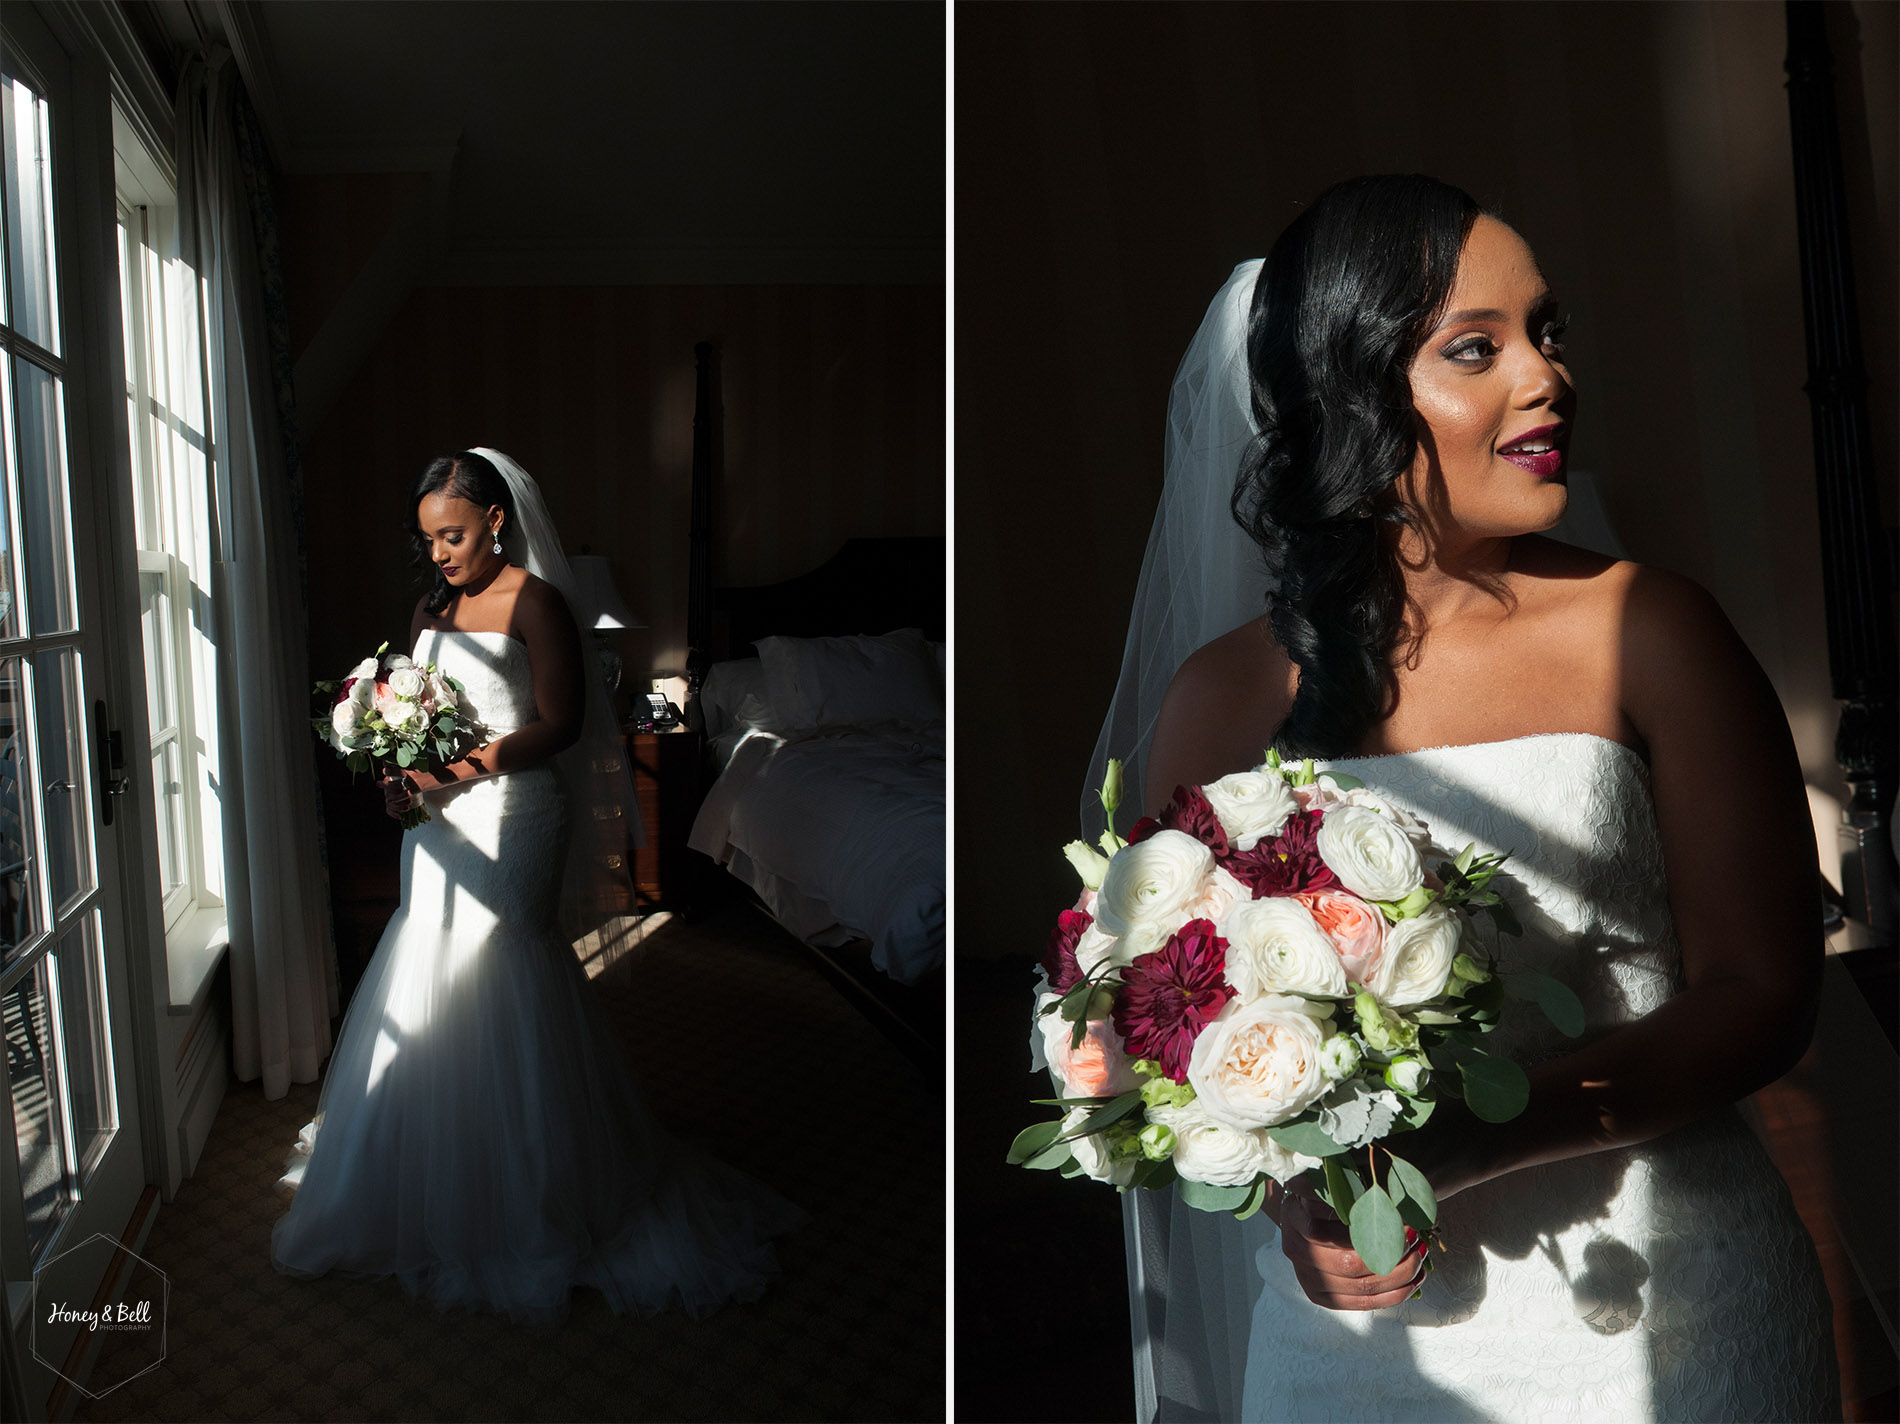 fields-wedding-rochester-michigan-detroit-wedding-photographer-royal-park-hotel-bride-getting-ready-14